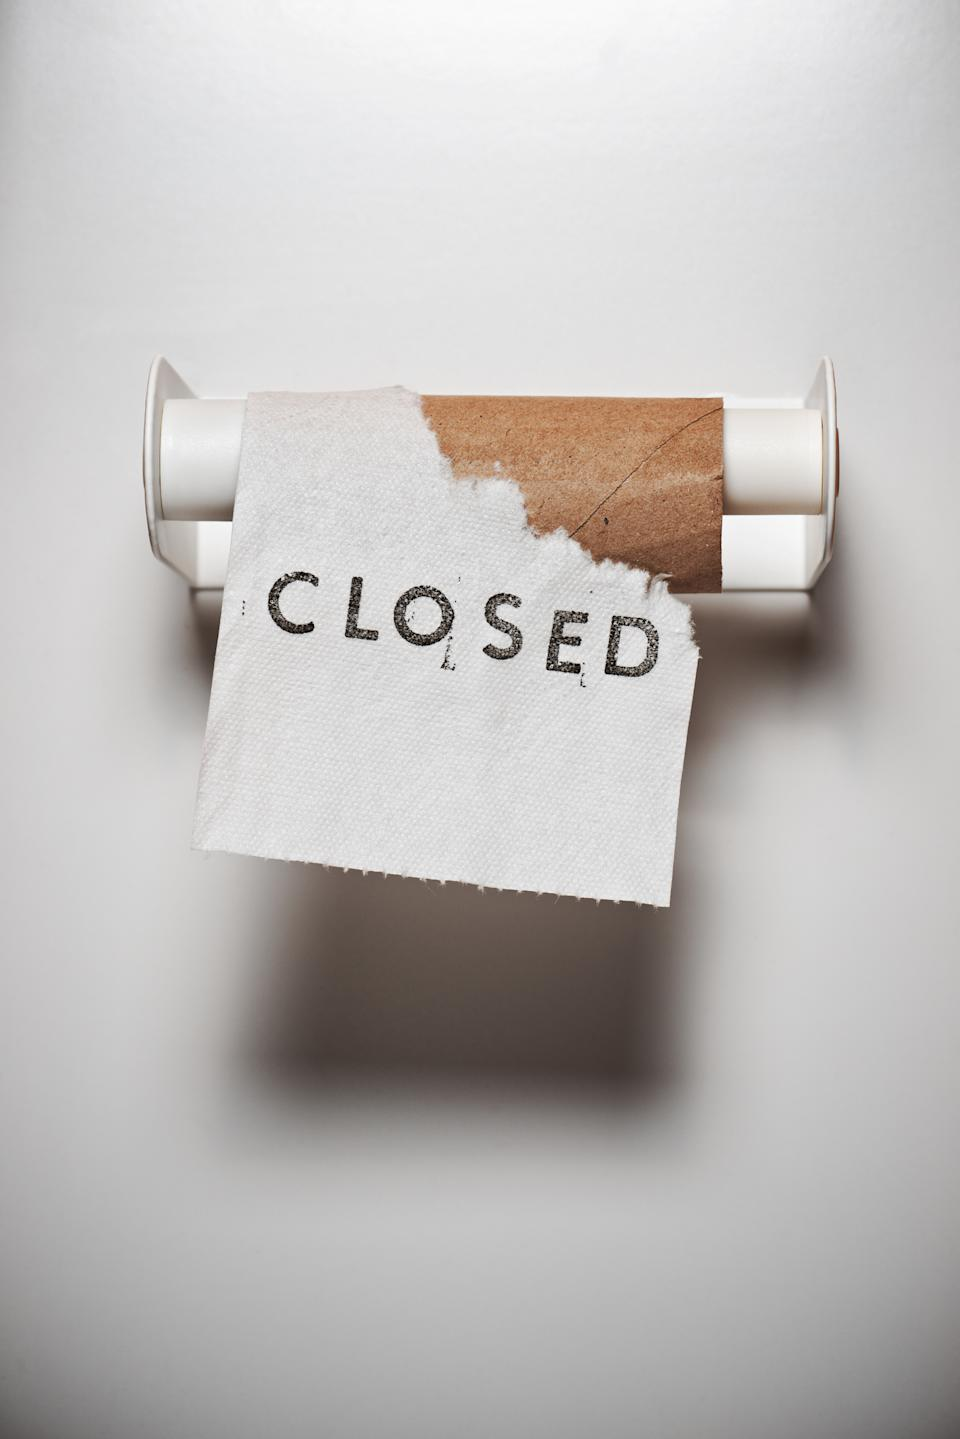 Many public toilets have closed since the start of the pandemic. (Getty Images)